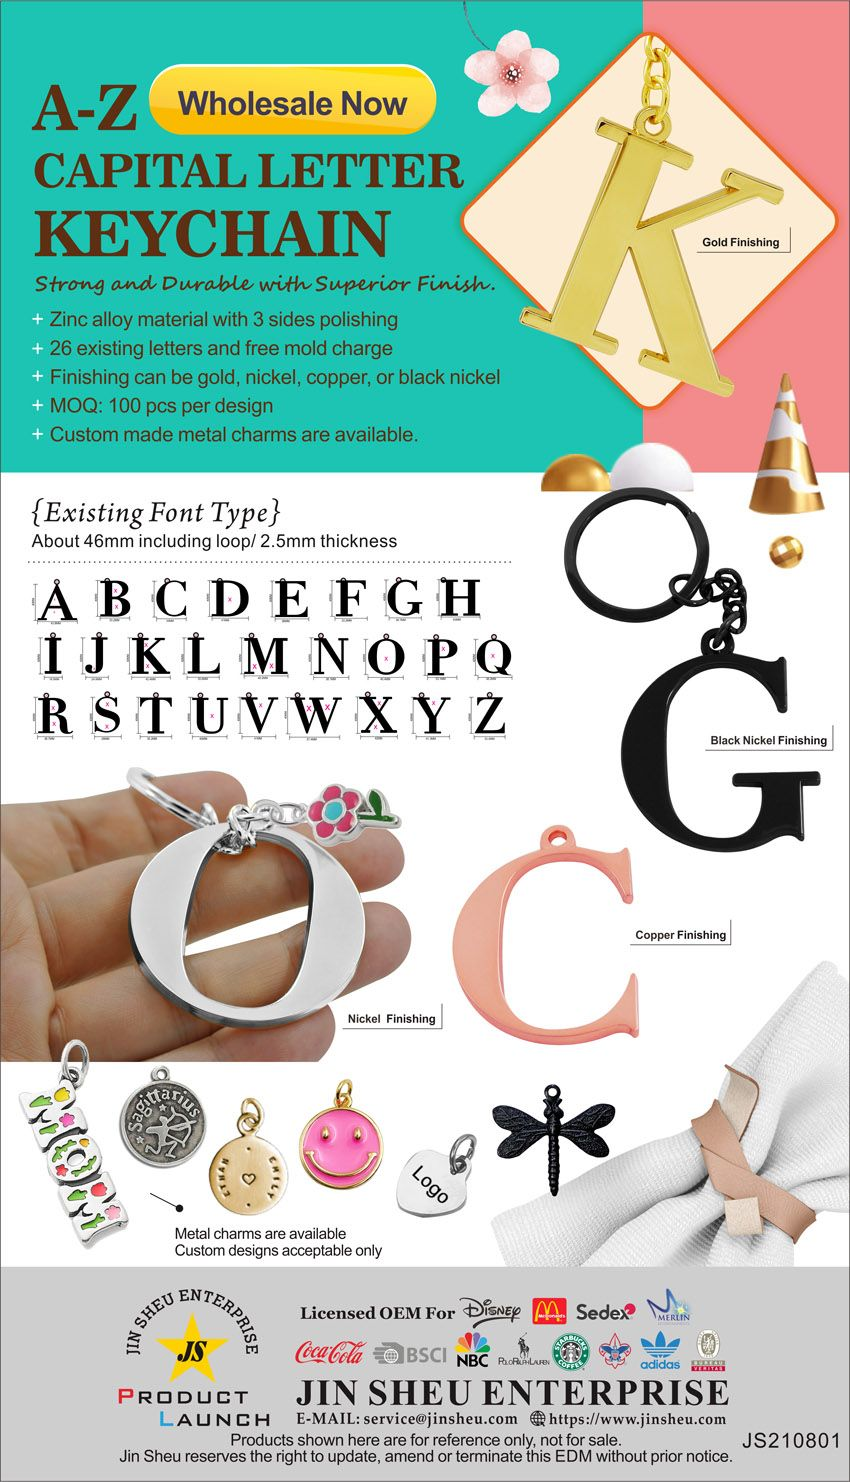 A-Z Capital Letter Keychain